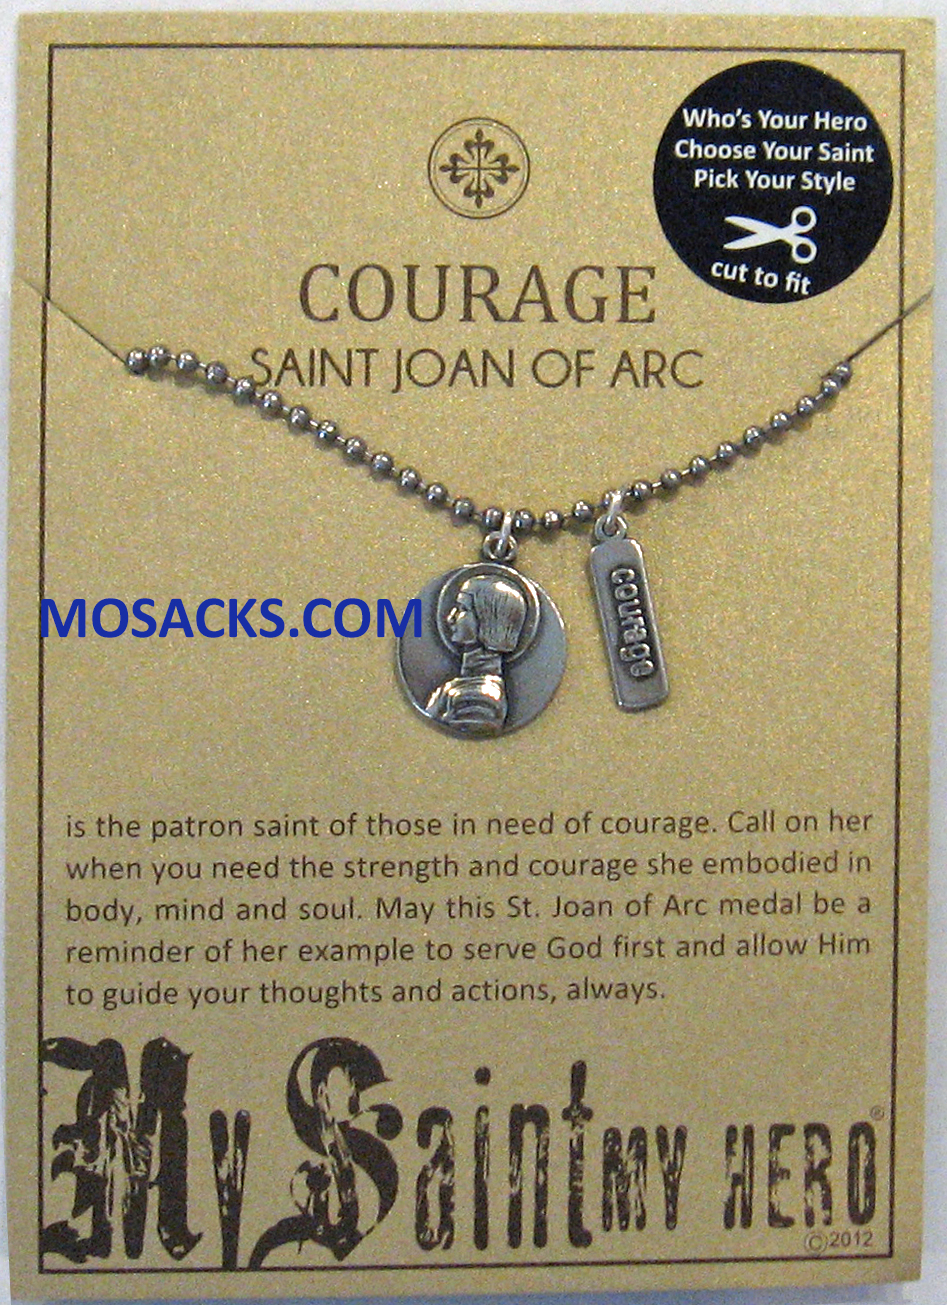 My Saint My Hero Trust St. Joan of Arc Necklace-NBBS-7 RETIRED